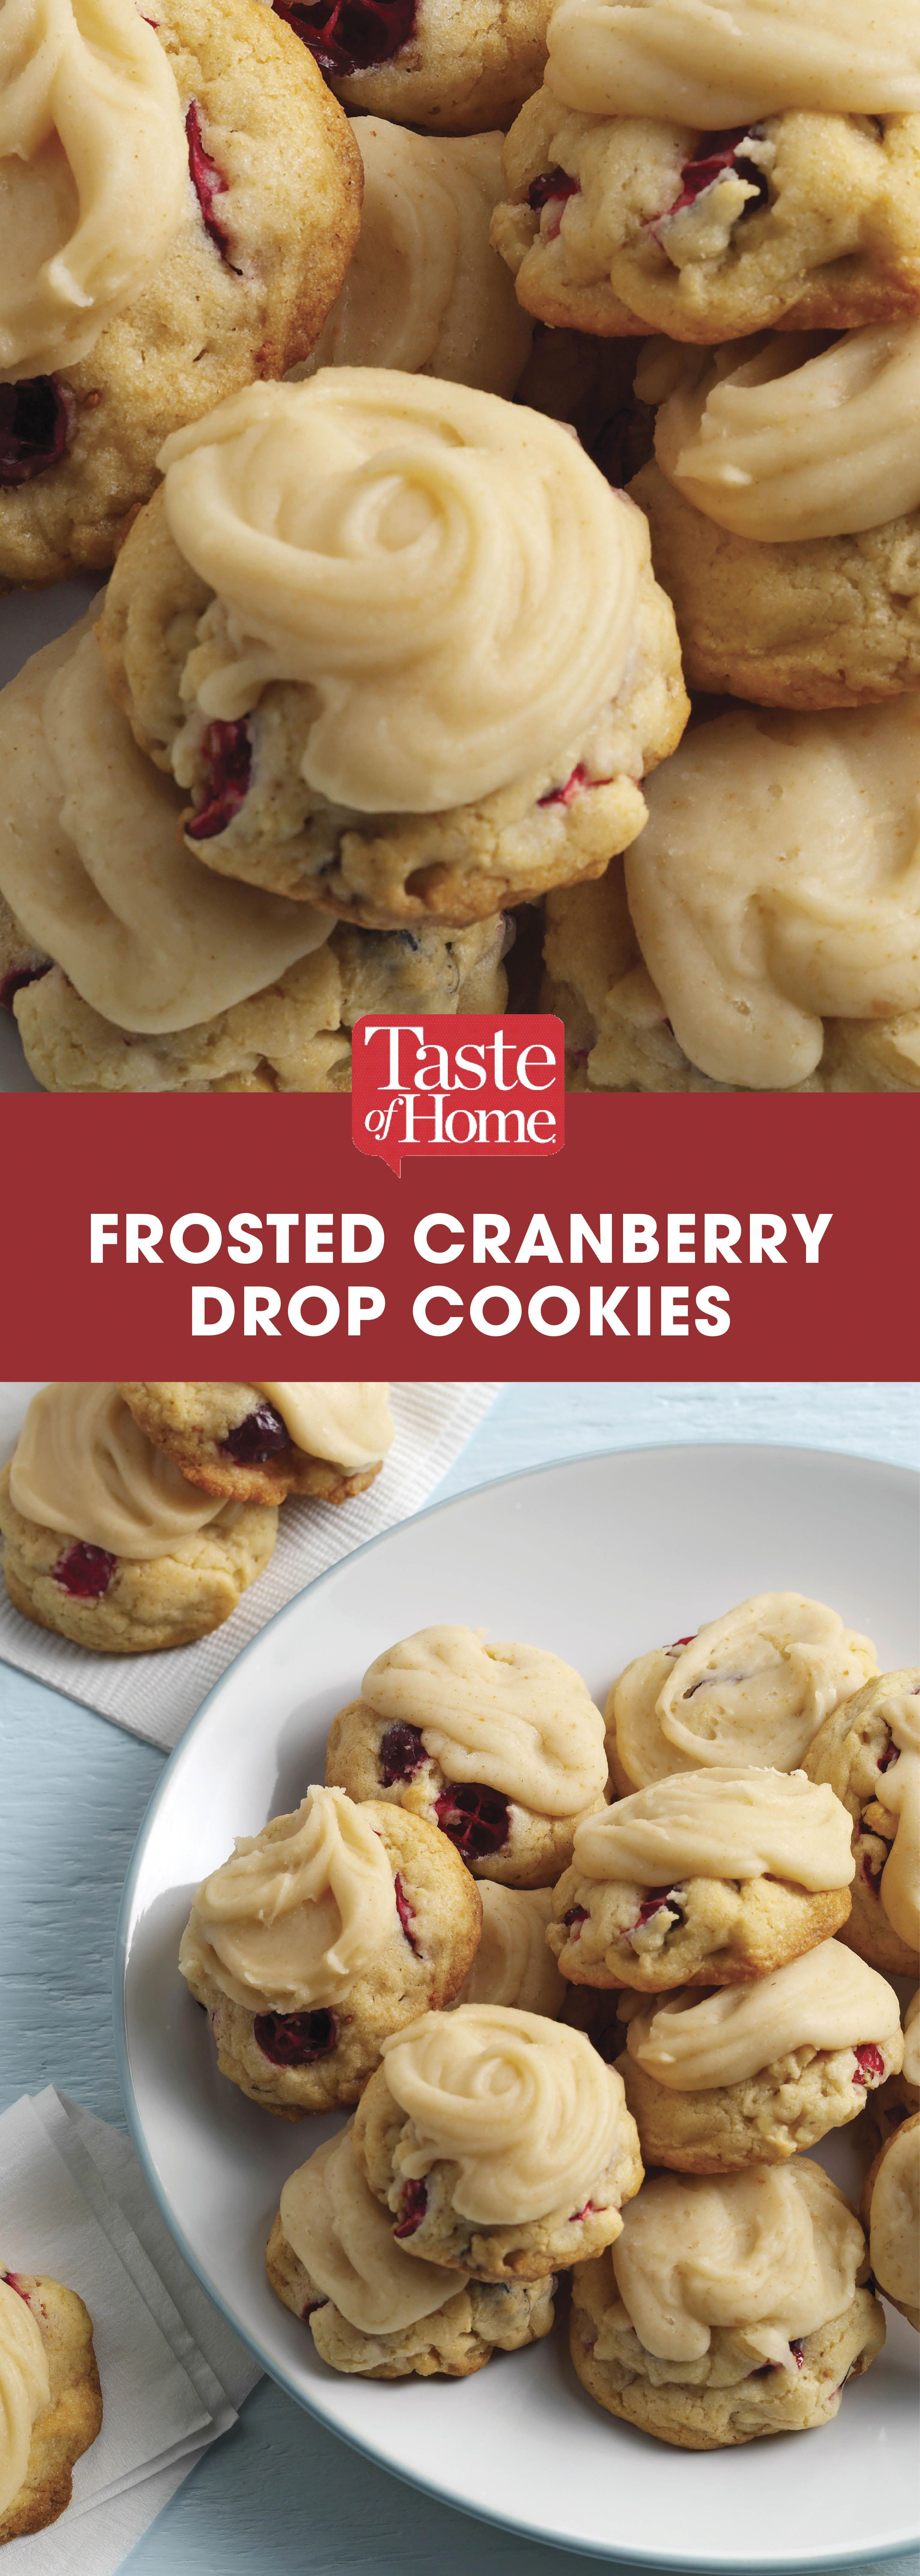 Frosted Cranberry Drop Cookies cookiesthanksgiving in